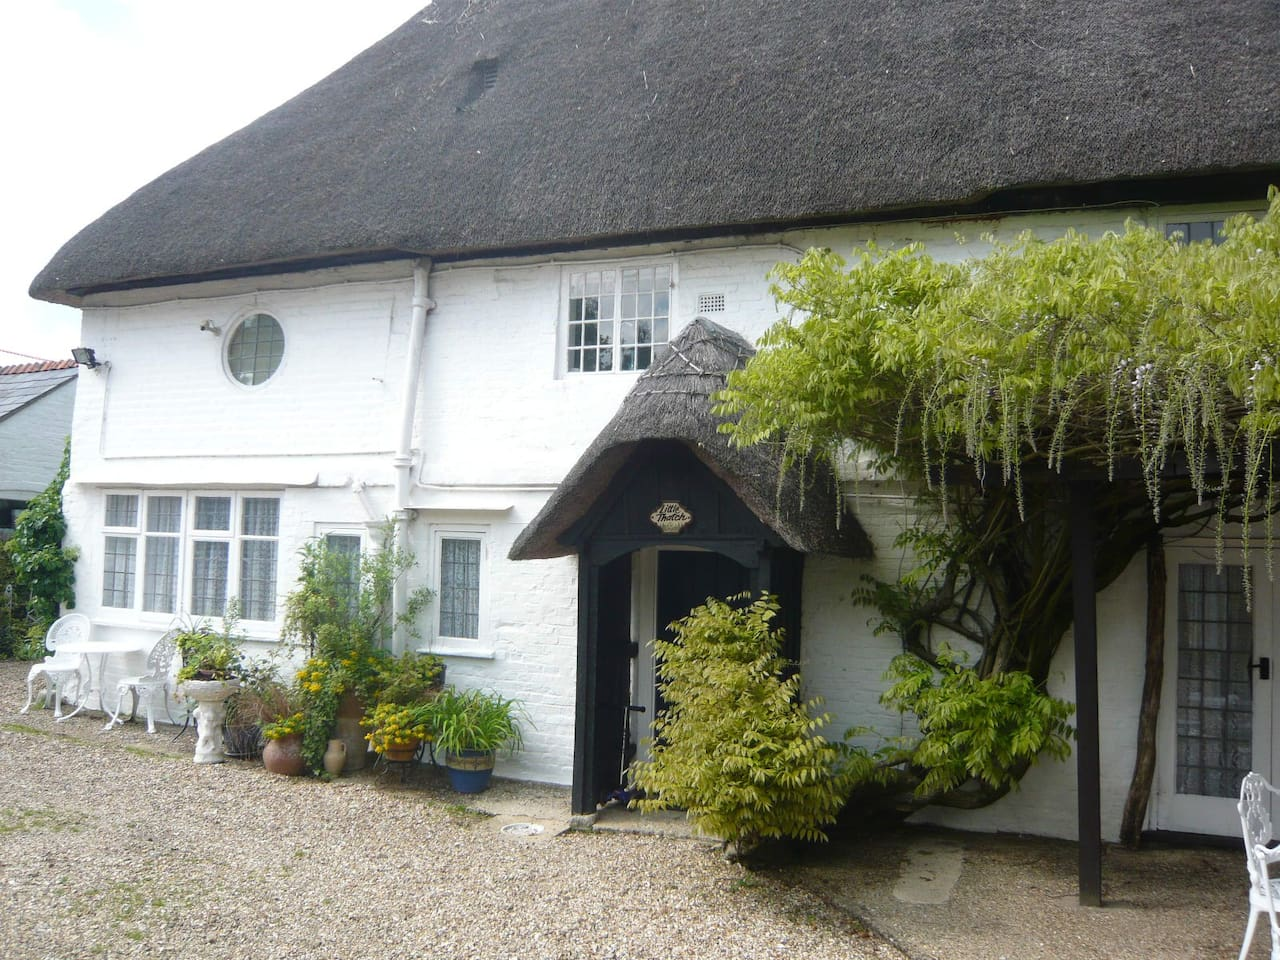 Entrance to Little Thatch